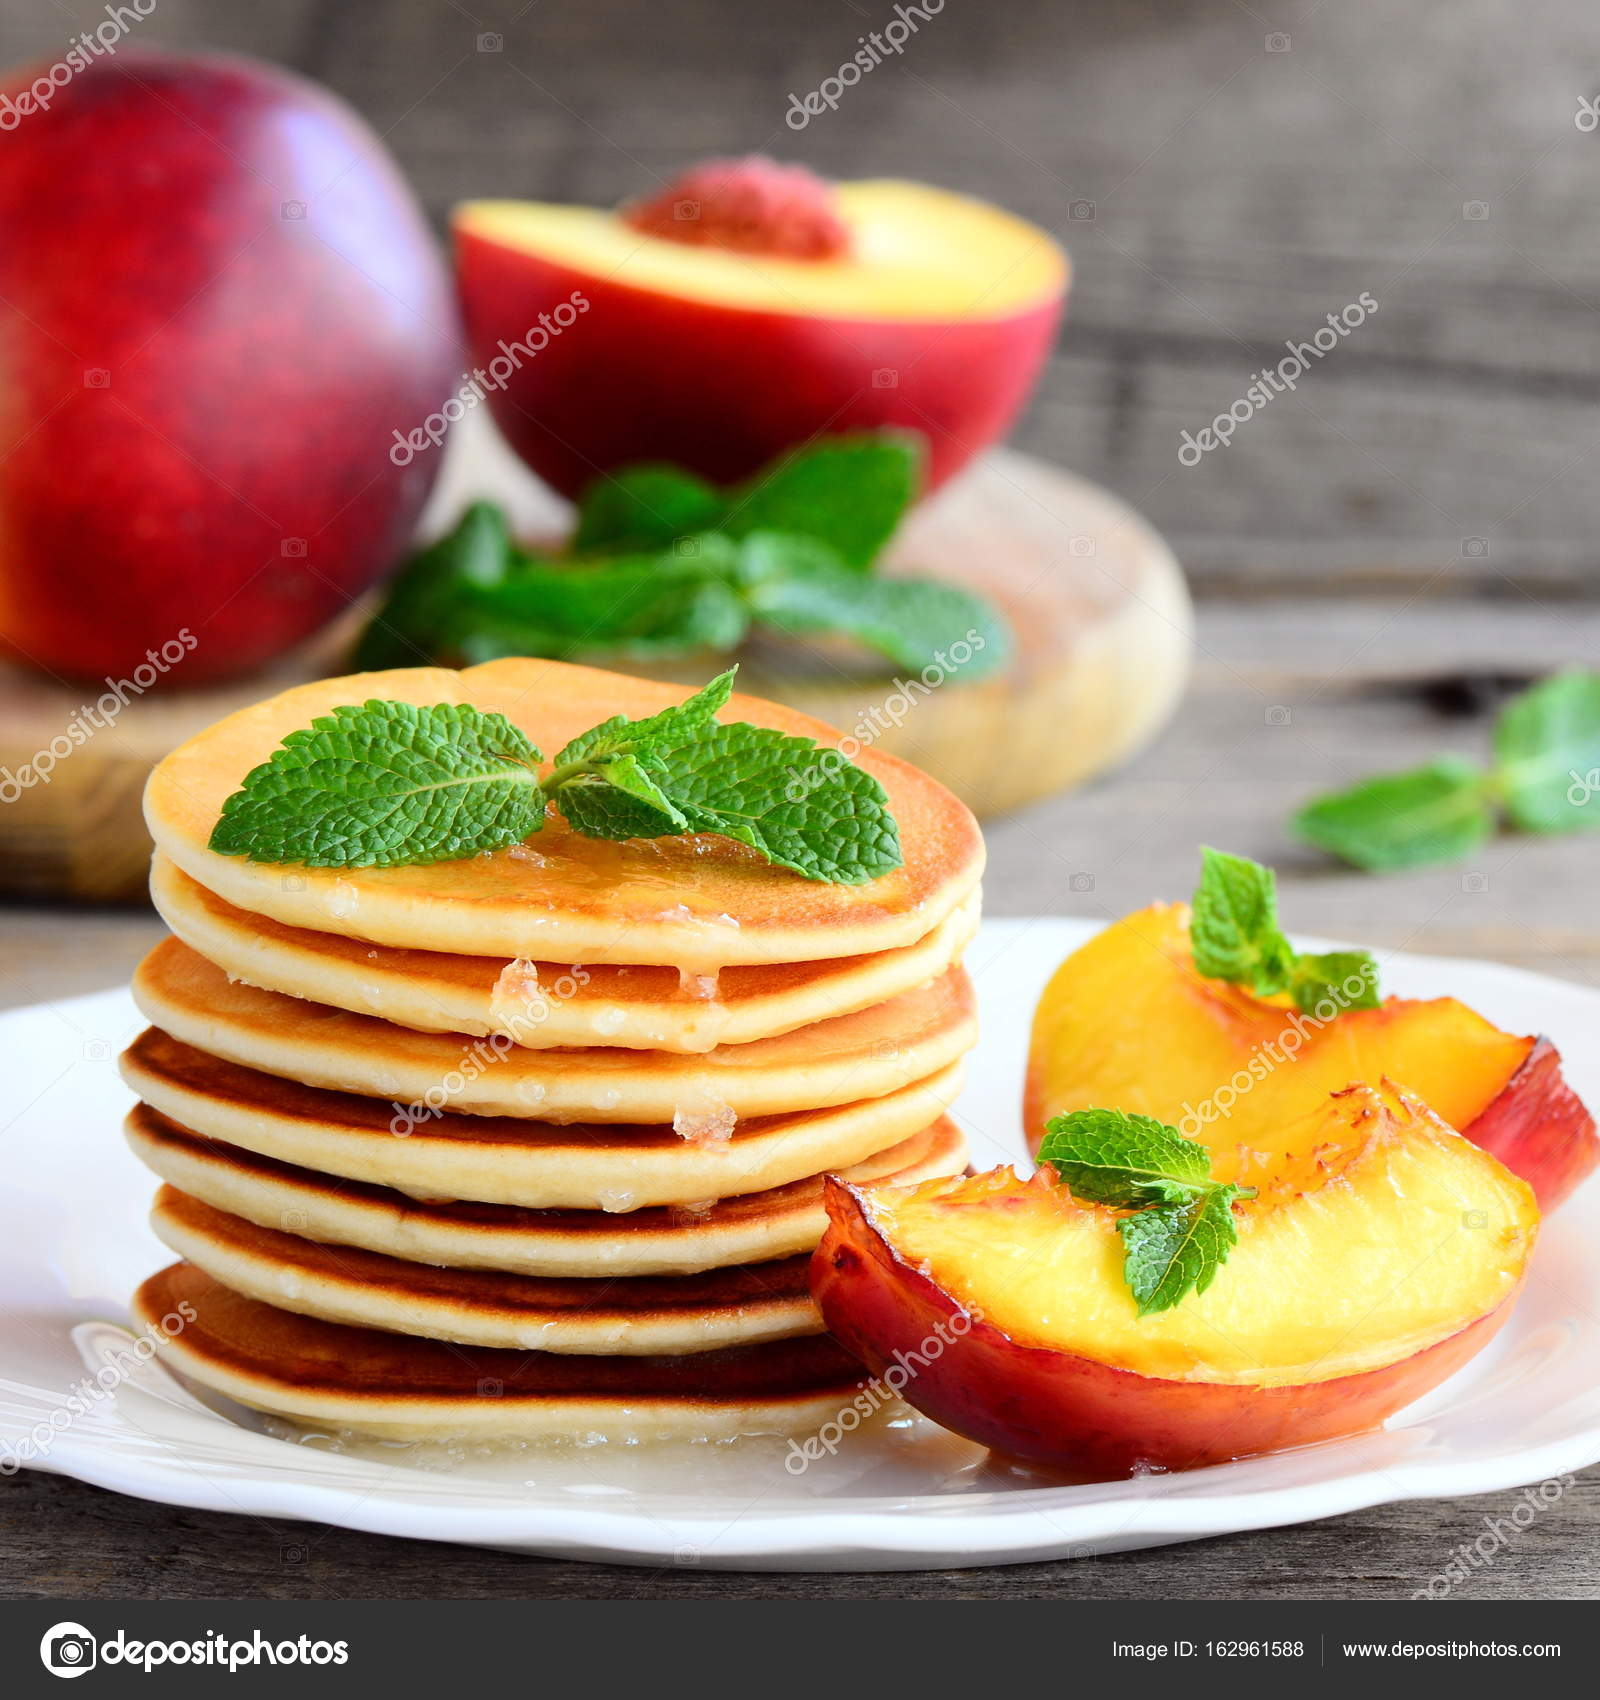 Yummy pancakes with sirup nectarine and mint on a plate easy fried pancakes stack fried pancakes recipe homemade pancakes recipe homemade pancakes photo delicious pancakes idea pancakes with fruit ccuart Images